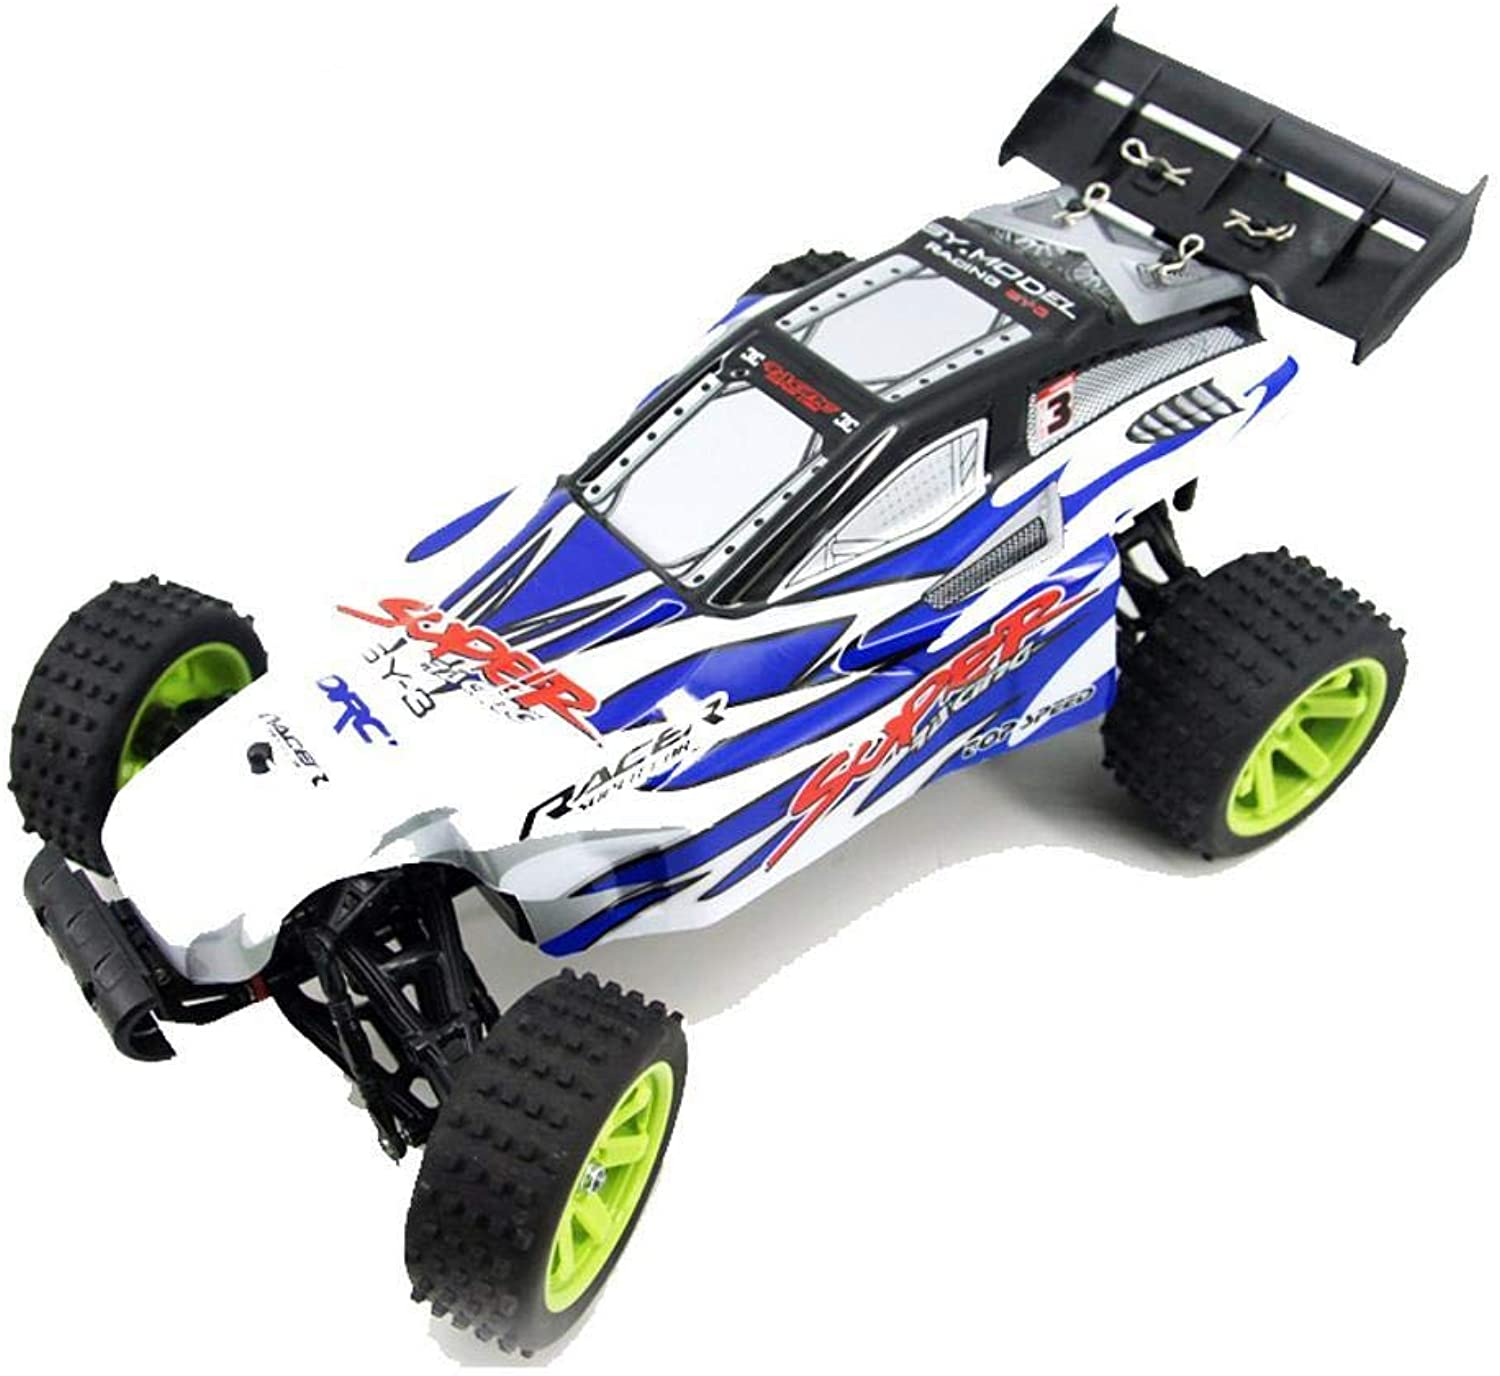 Penao Electric model remote control high-speed car, desert off-road, 2.4G RC SUV, RC car model, scale 1 16